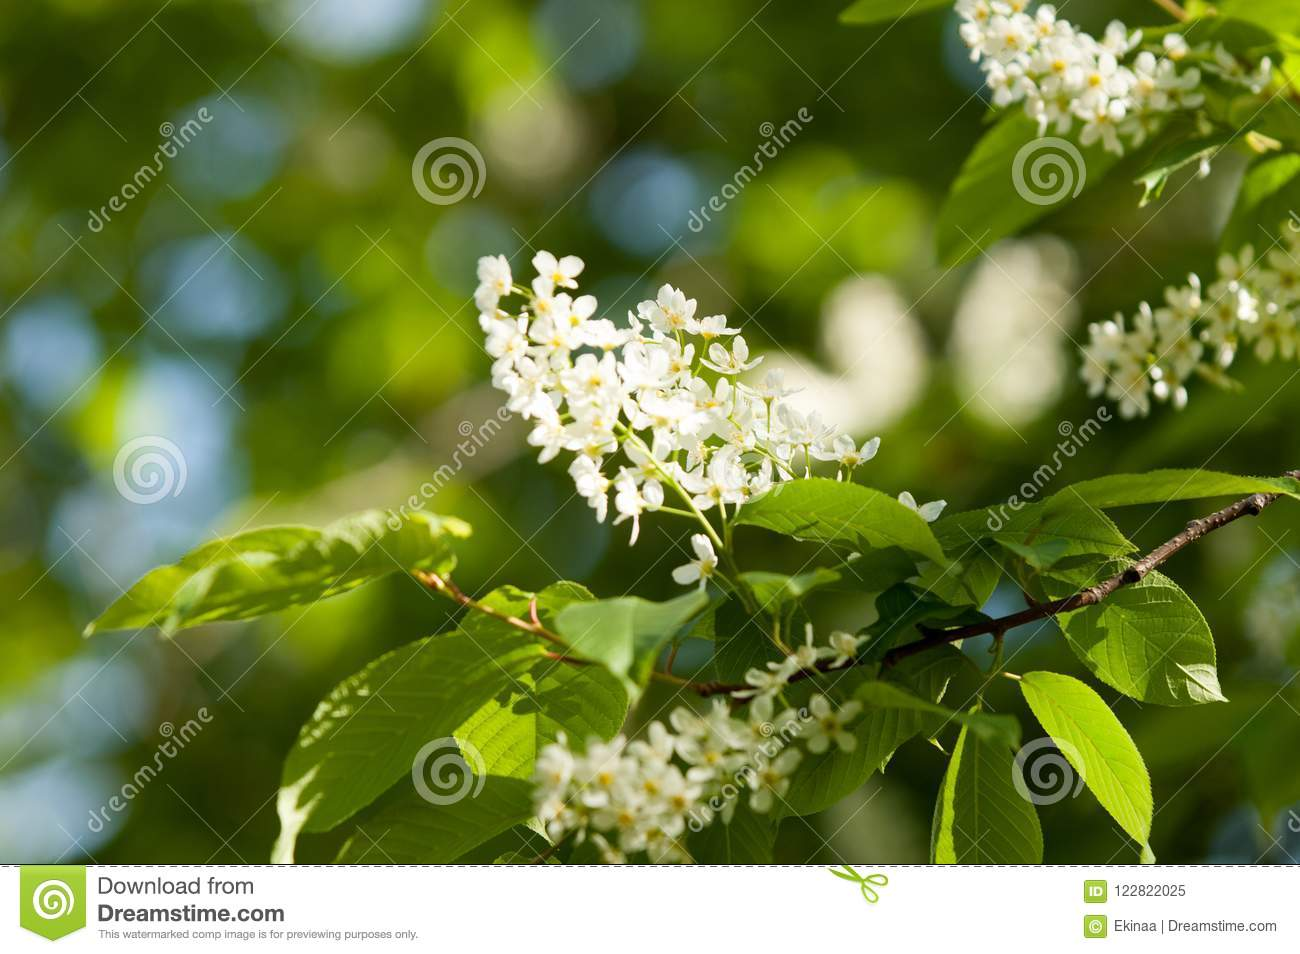 Spring Flowers Bird Spring Flowers Bird Cherry A Tree With